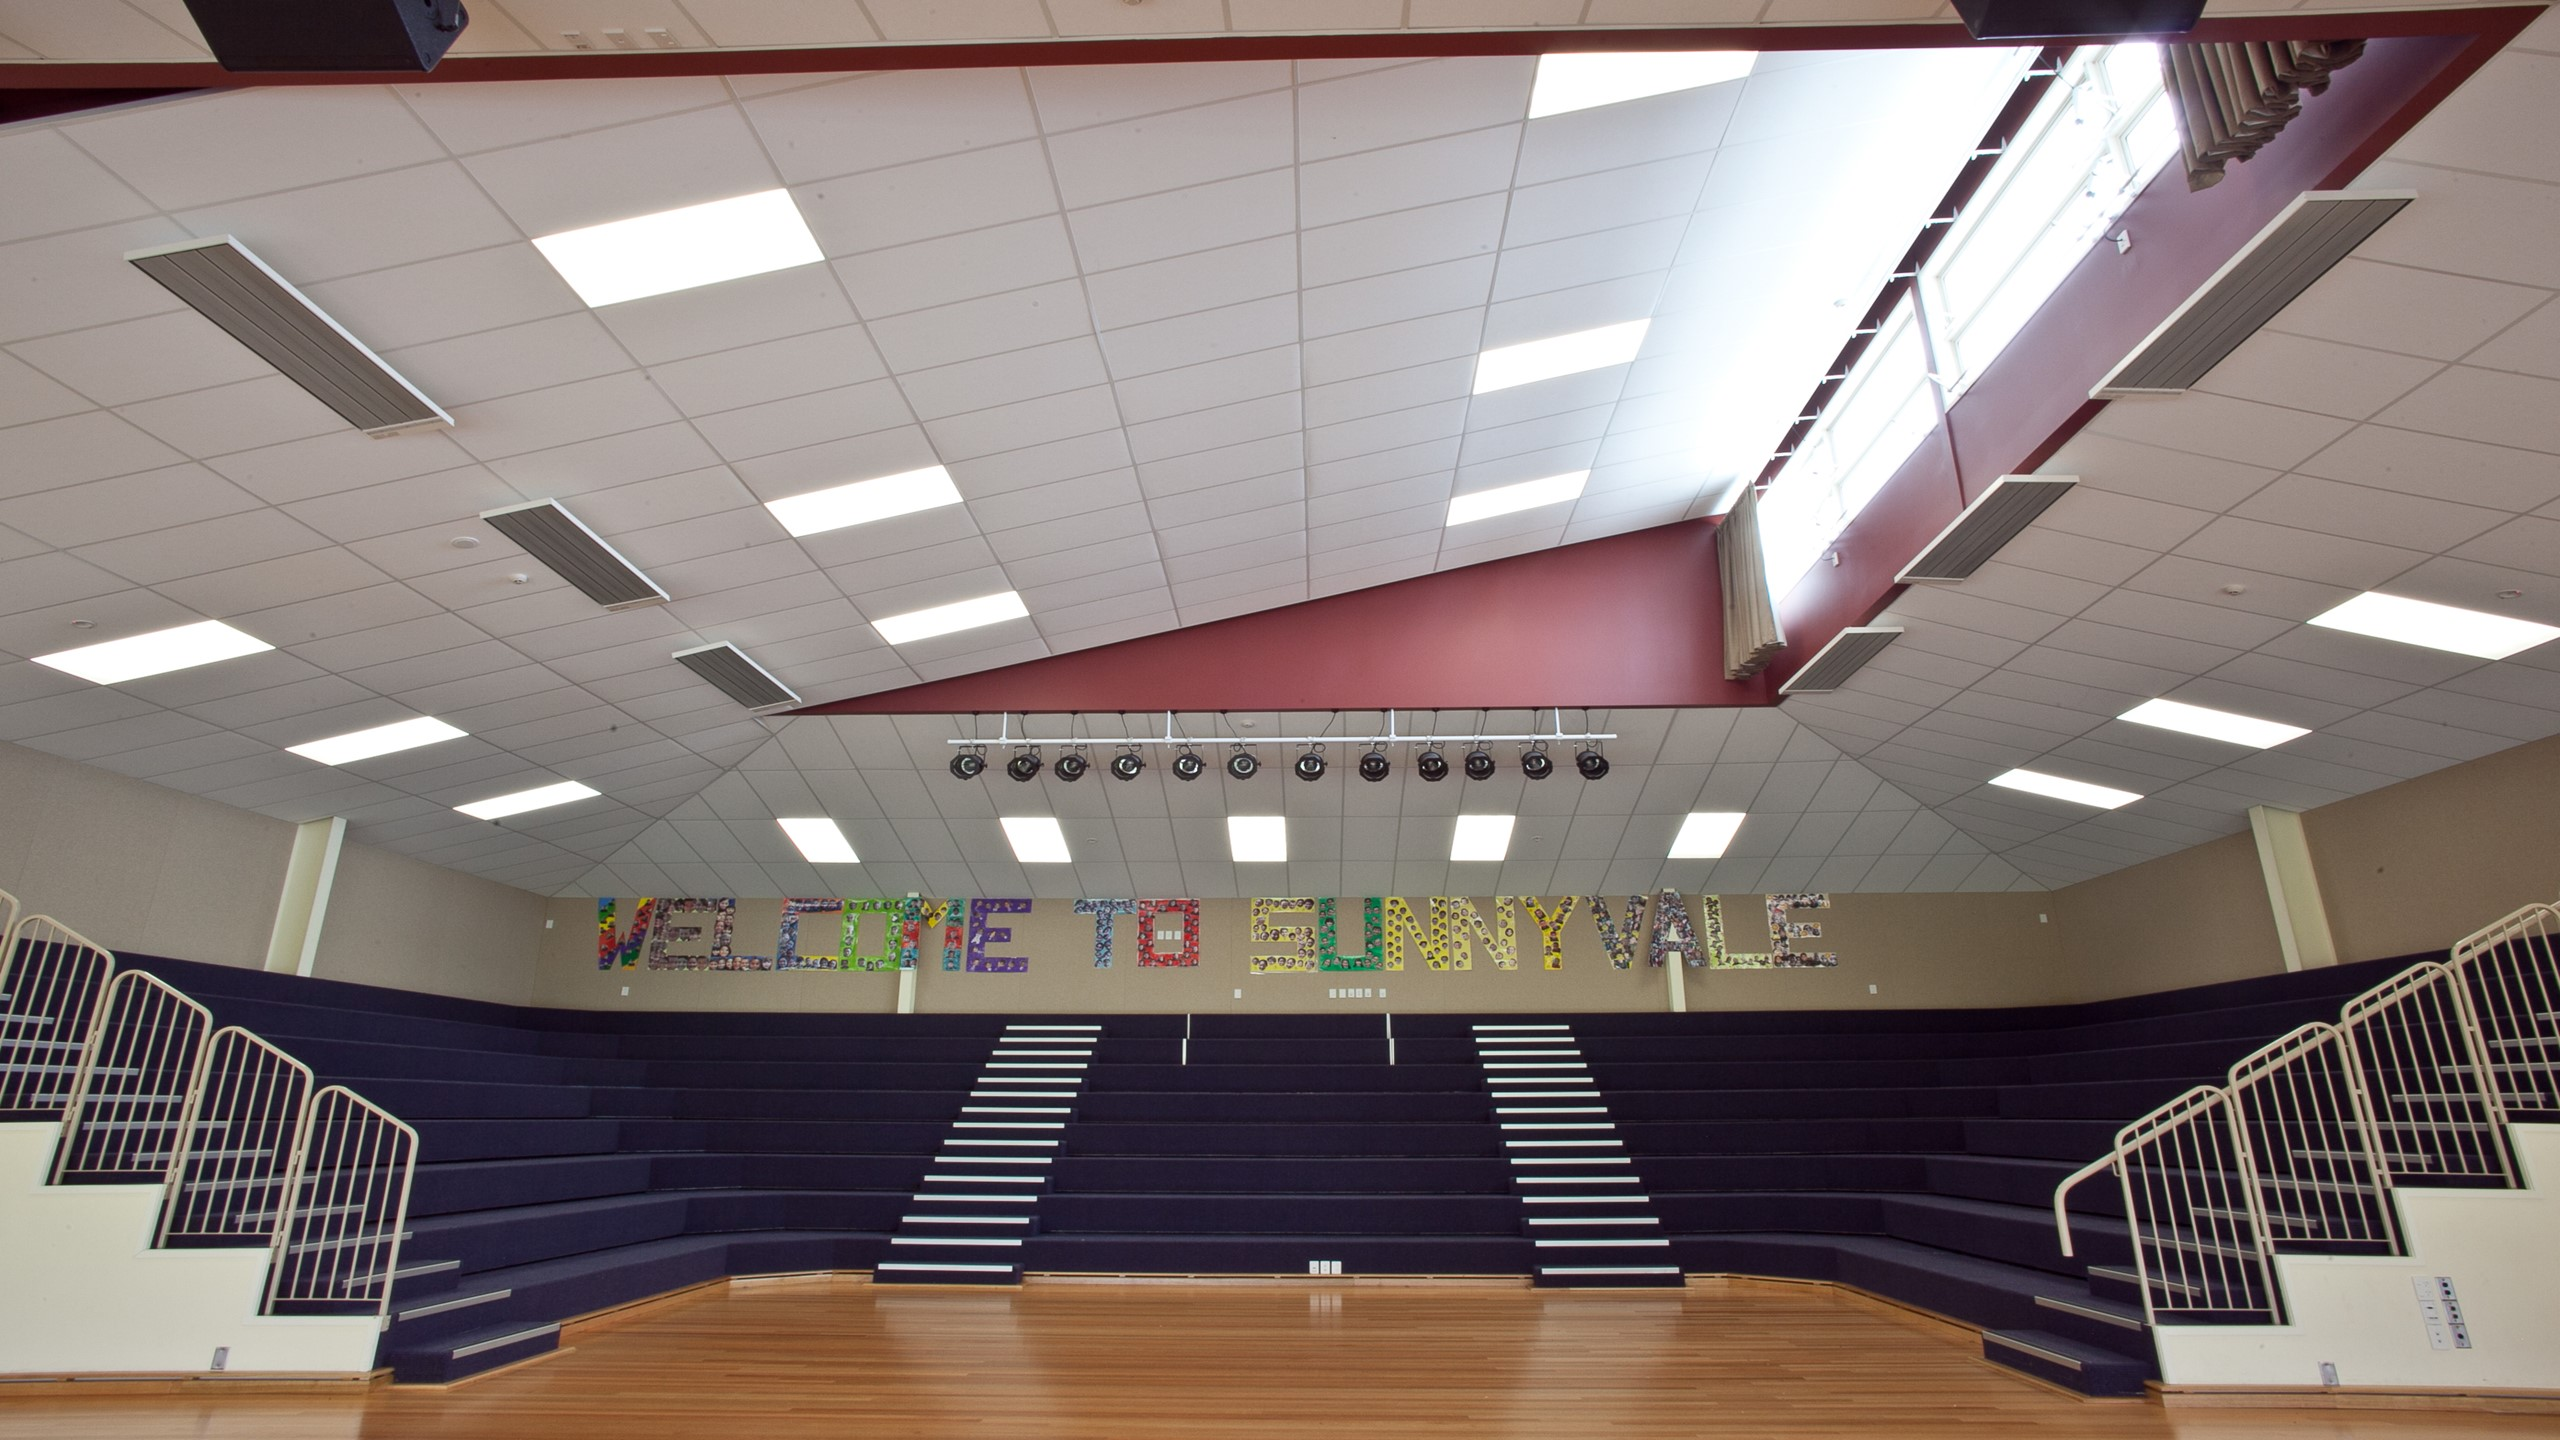 Sunnyvale School showing Diffusion installed into the auditorium